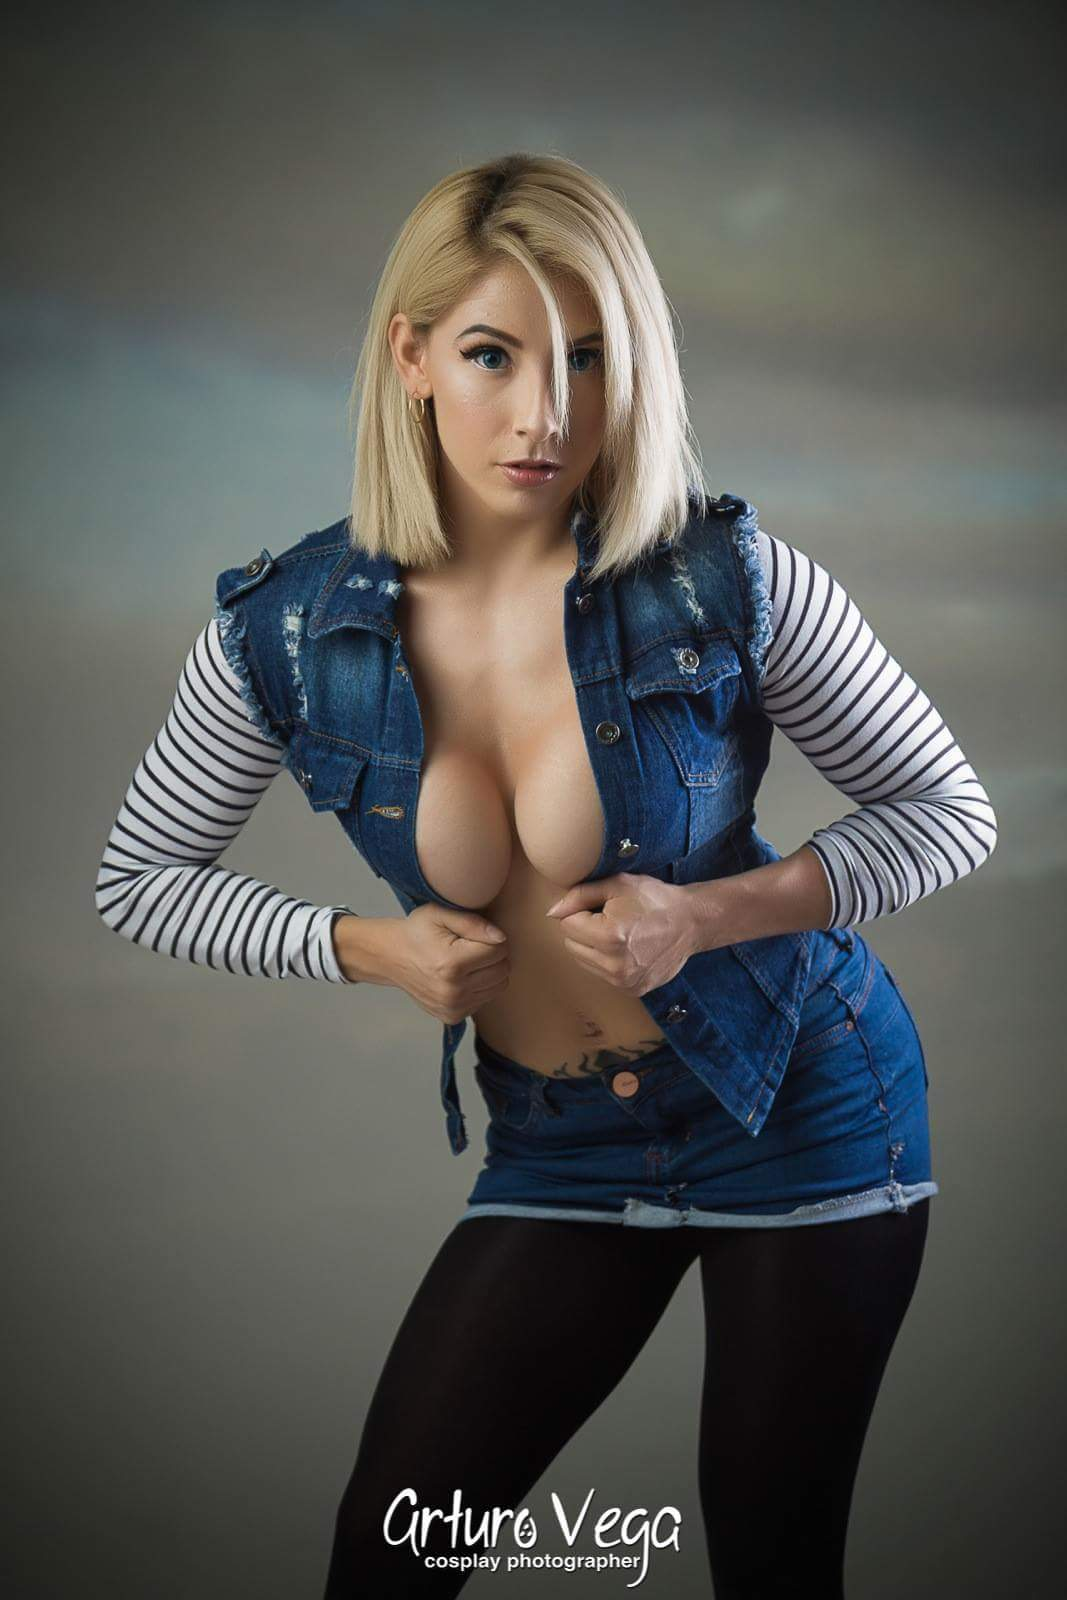 Android 18 cosplay porn